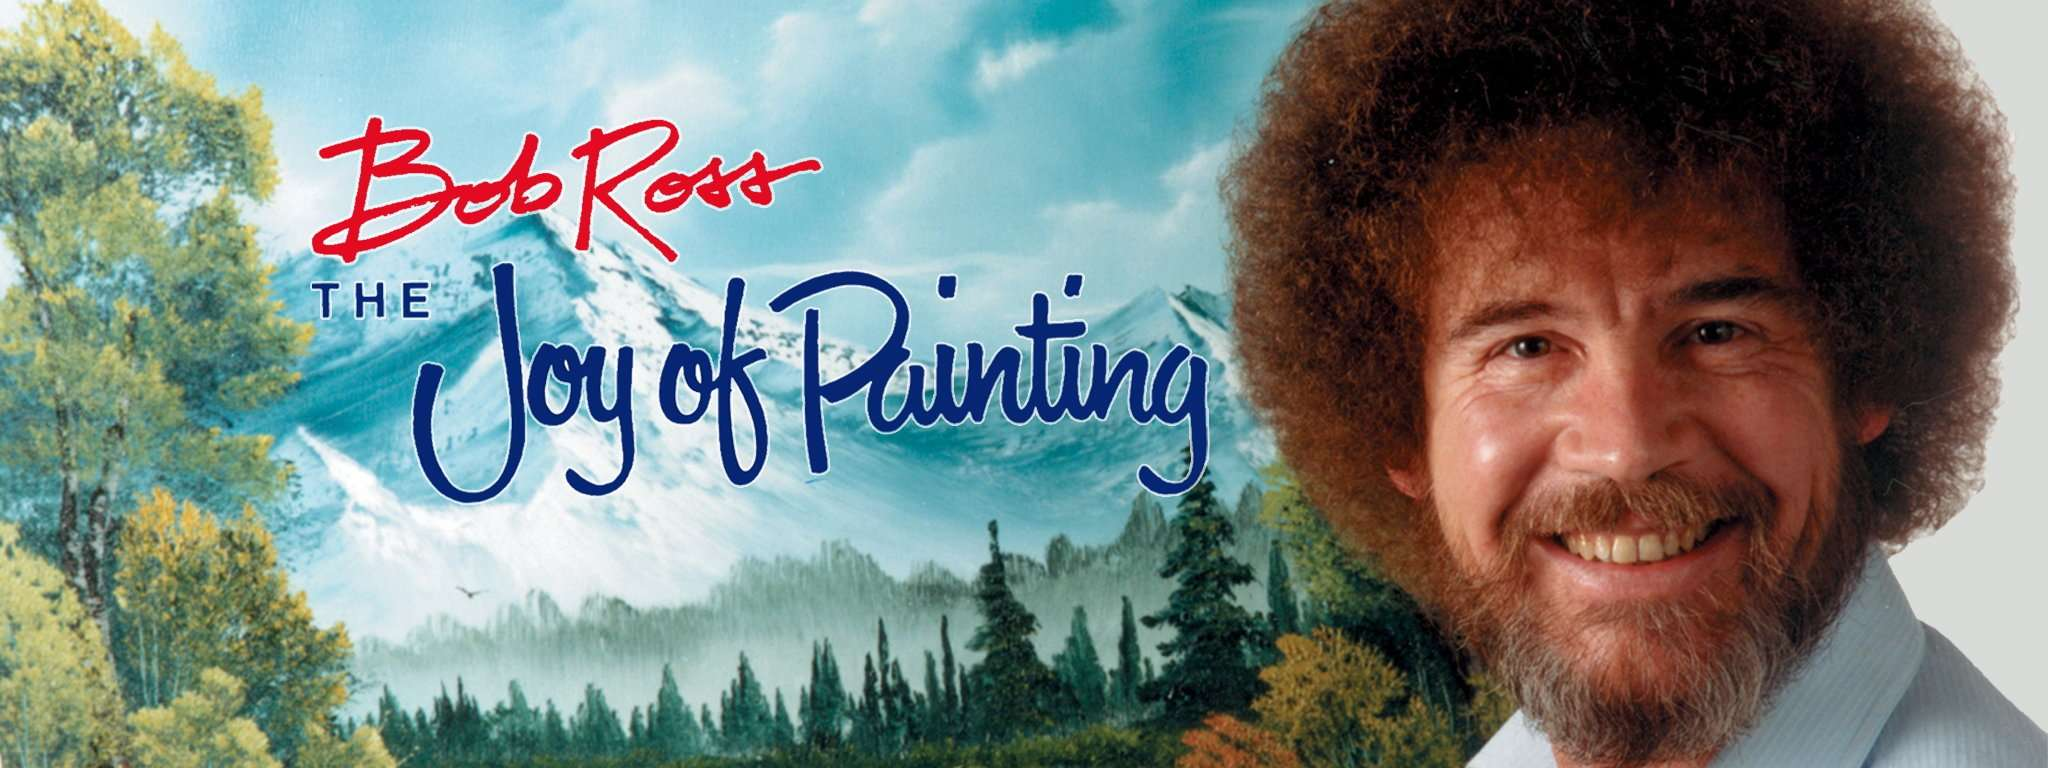 Bob Ross: The Joy of Painting